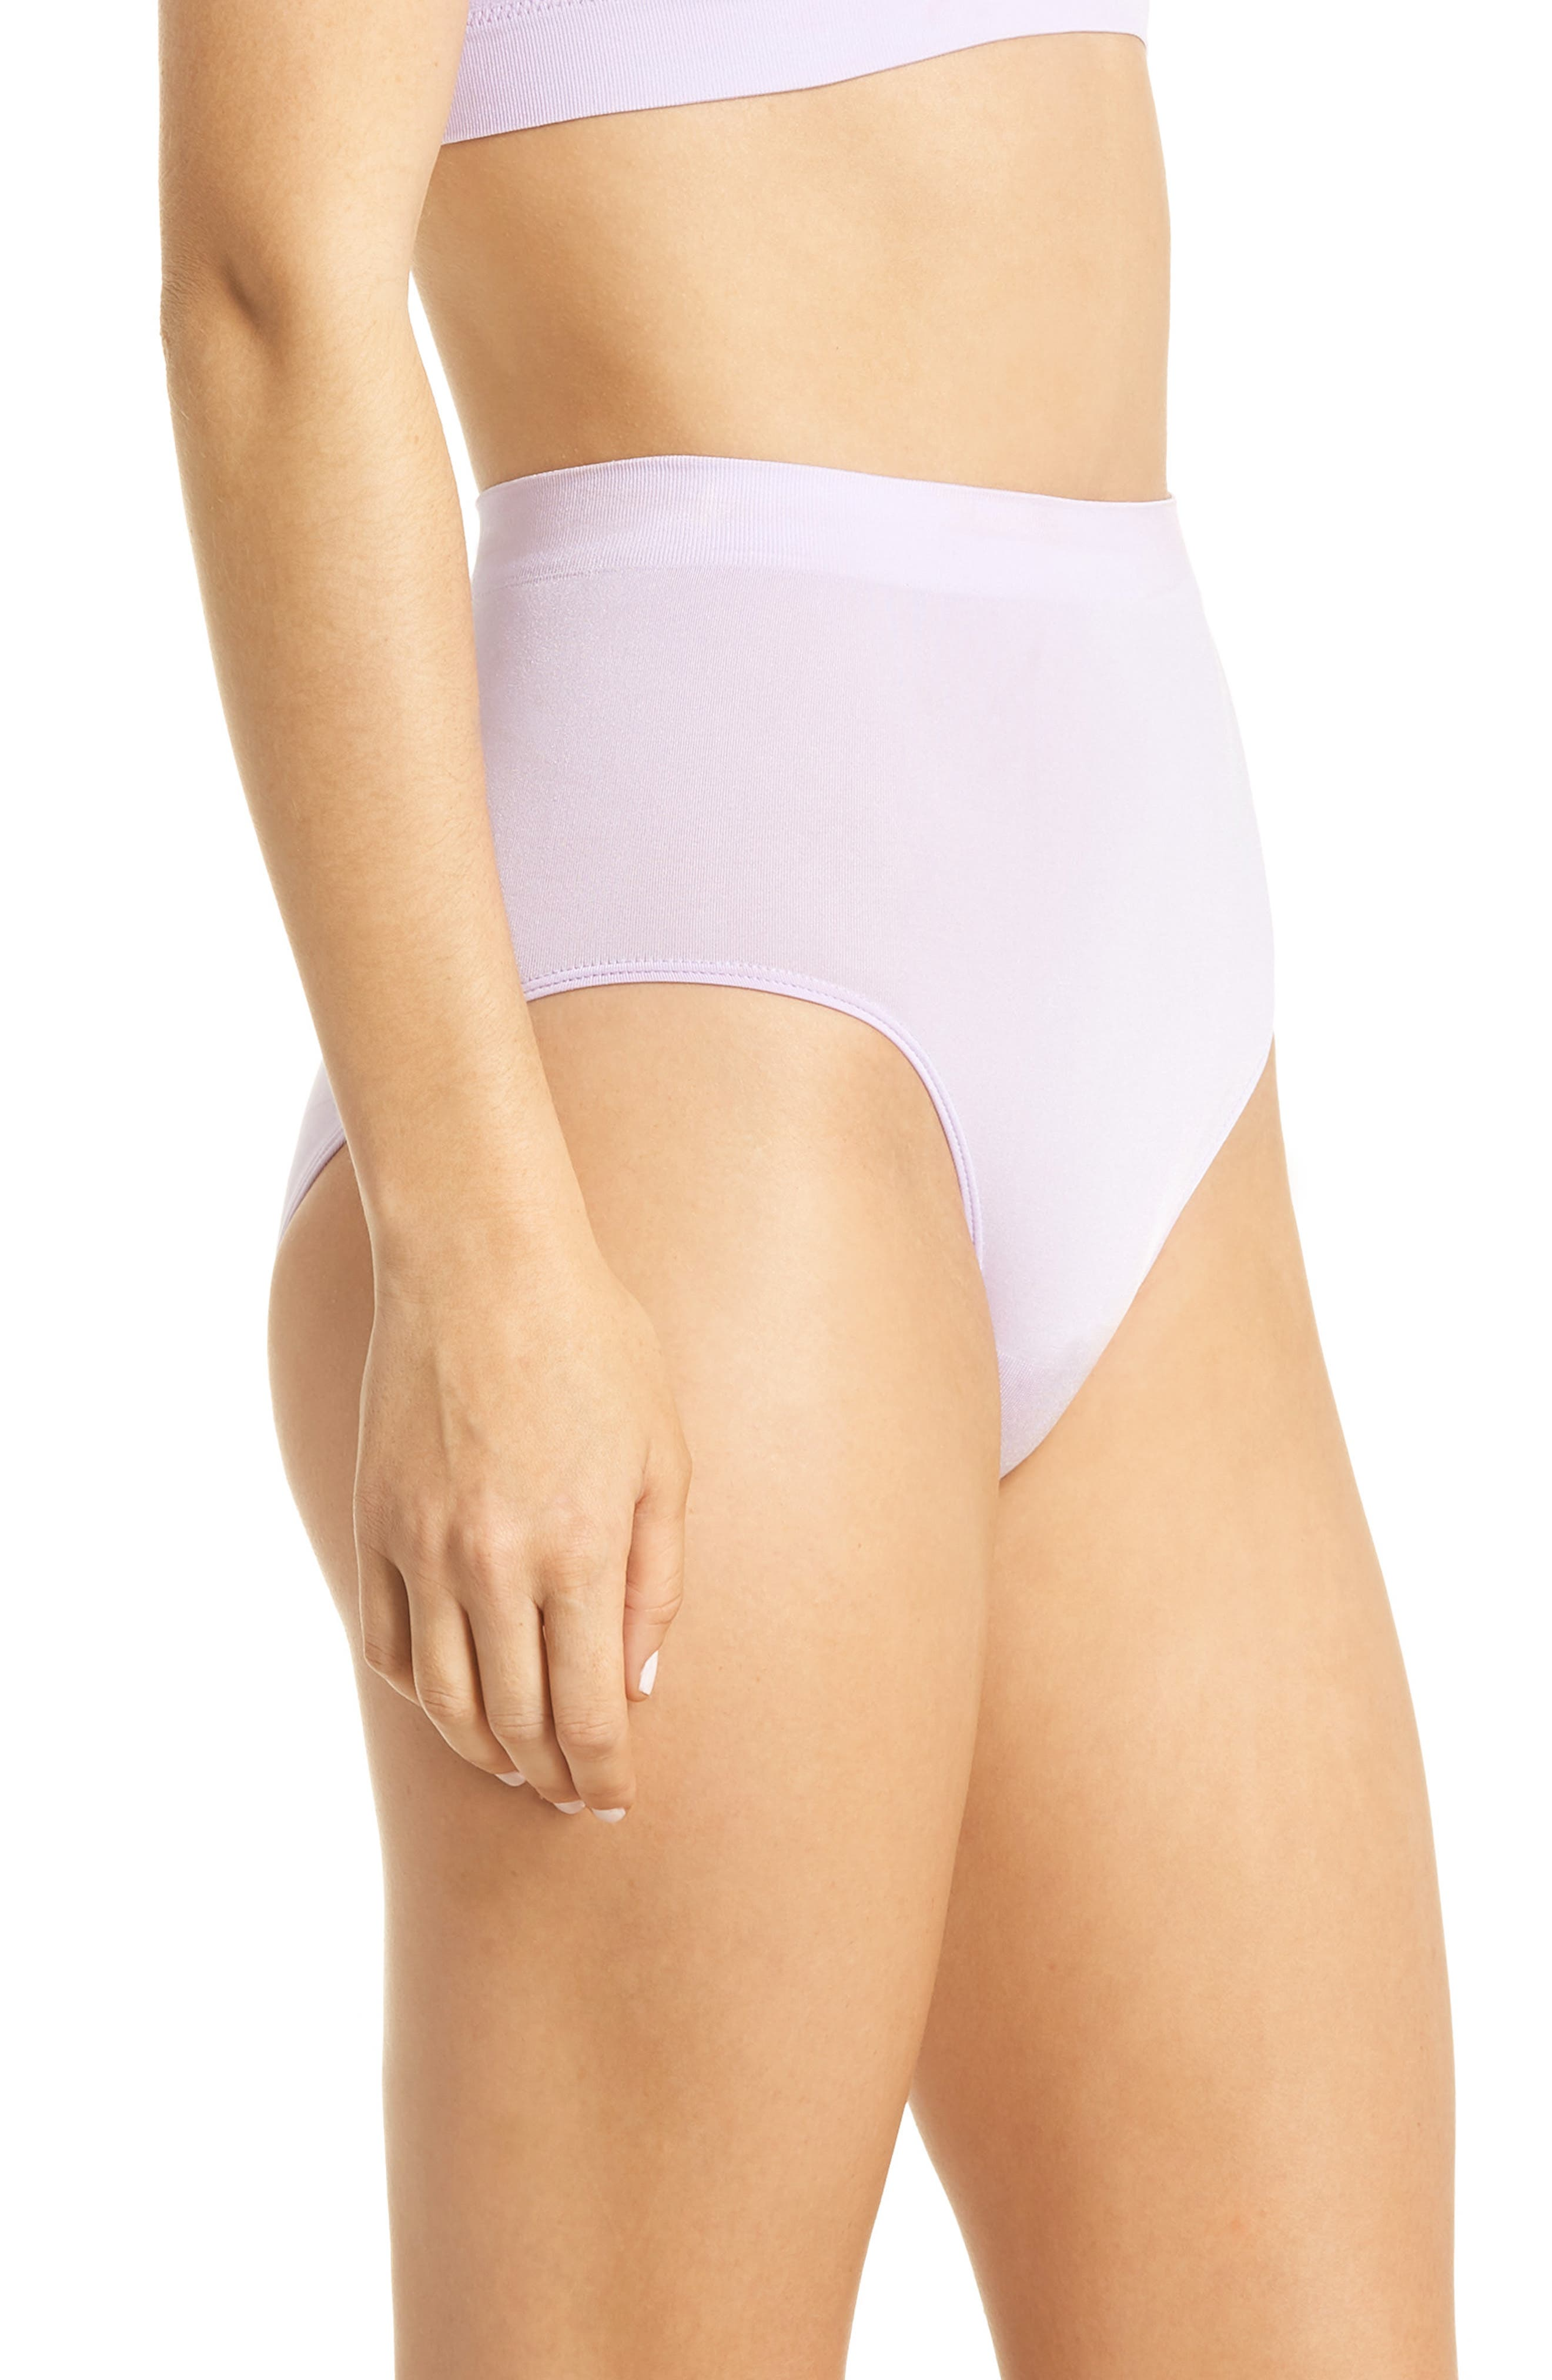 B Smooth Briefs,                             Alternate thumbnail 3, color,                             PASTEL LILAC